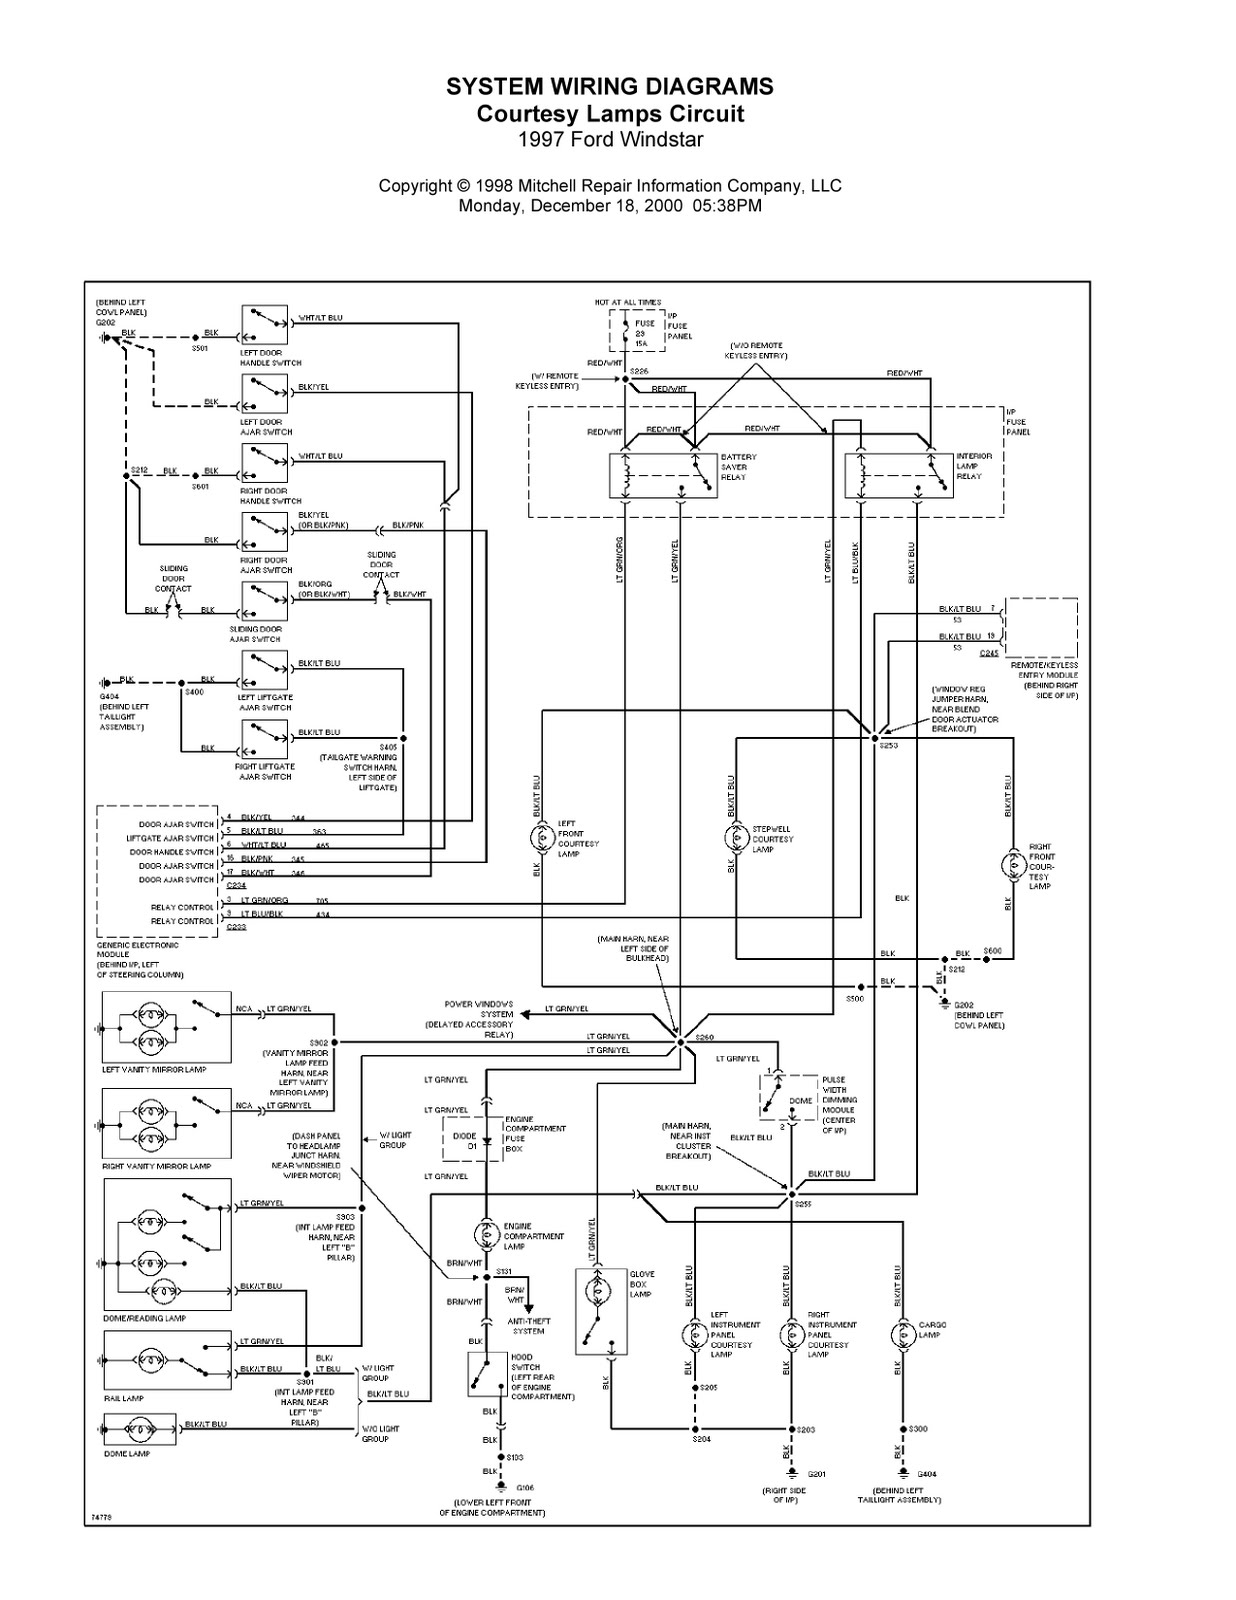 1997 ford windstar system wiring diagrams for front washer wiper